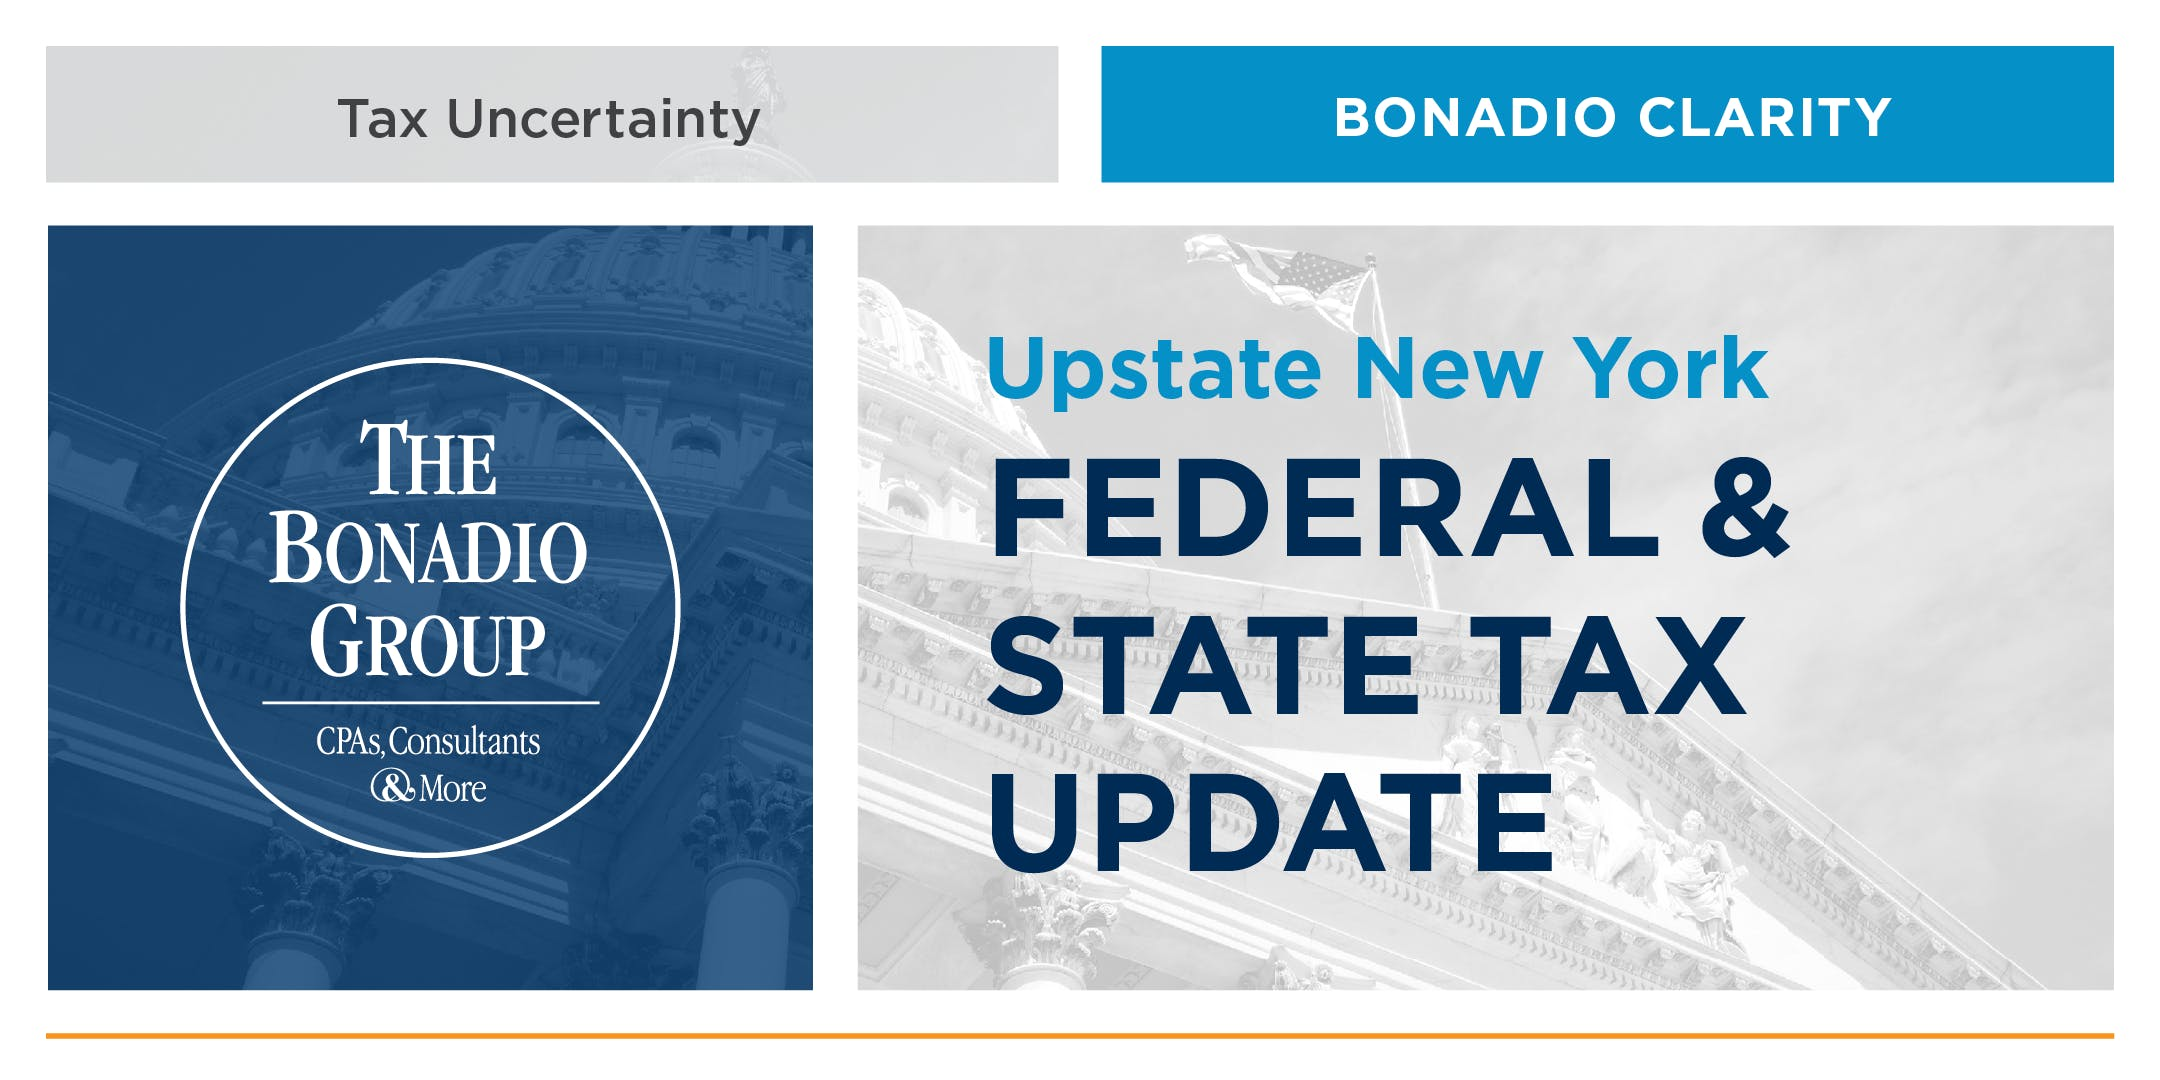 Upstate New York Federal & State Tax Update